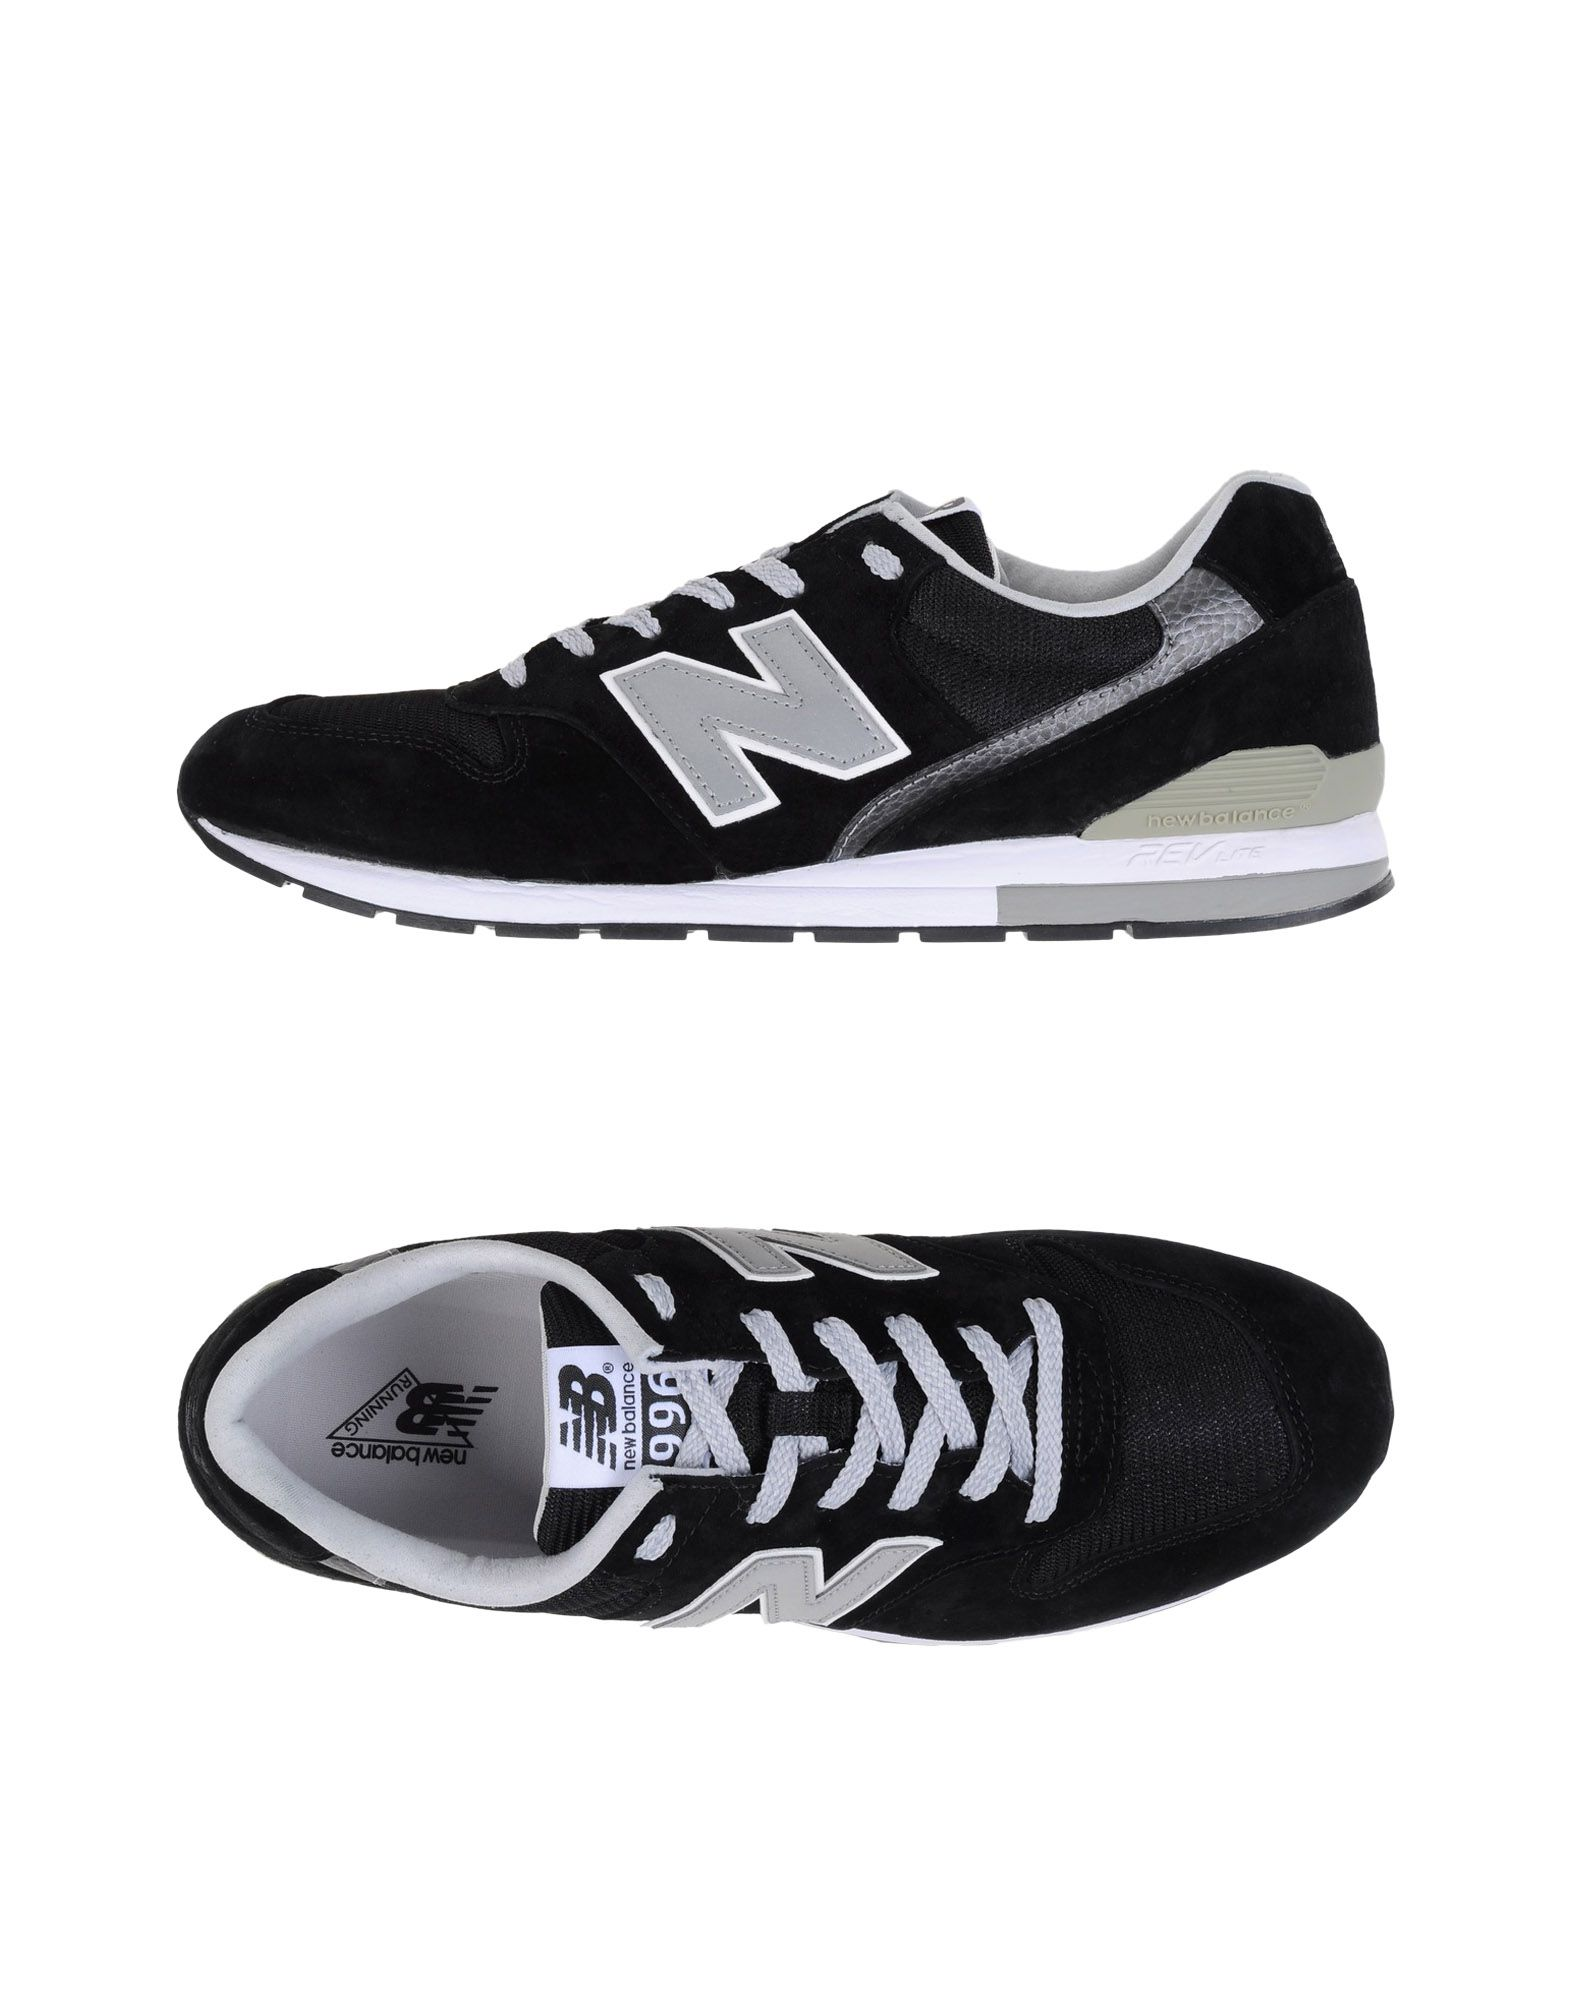 Sneakers New Balance 996 Carryover - Homme - Sneakers New Balance sur